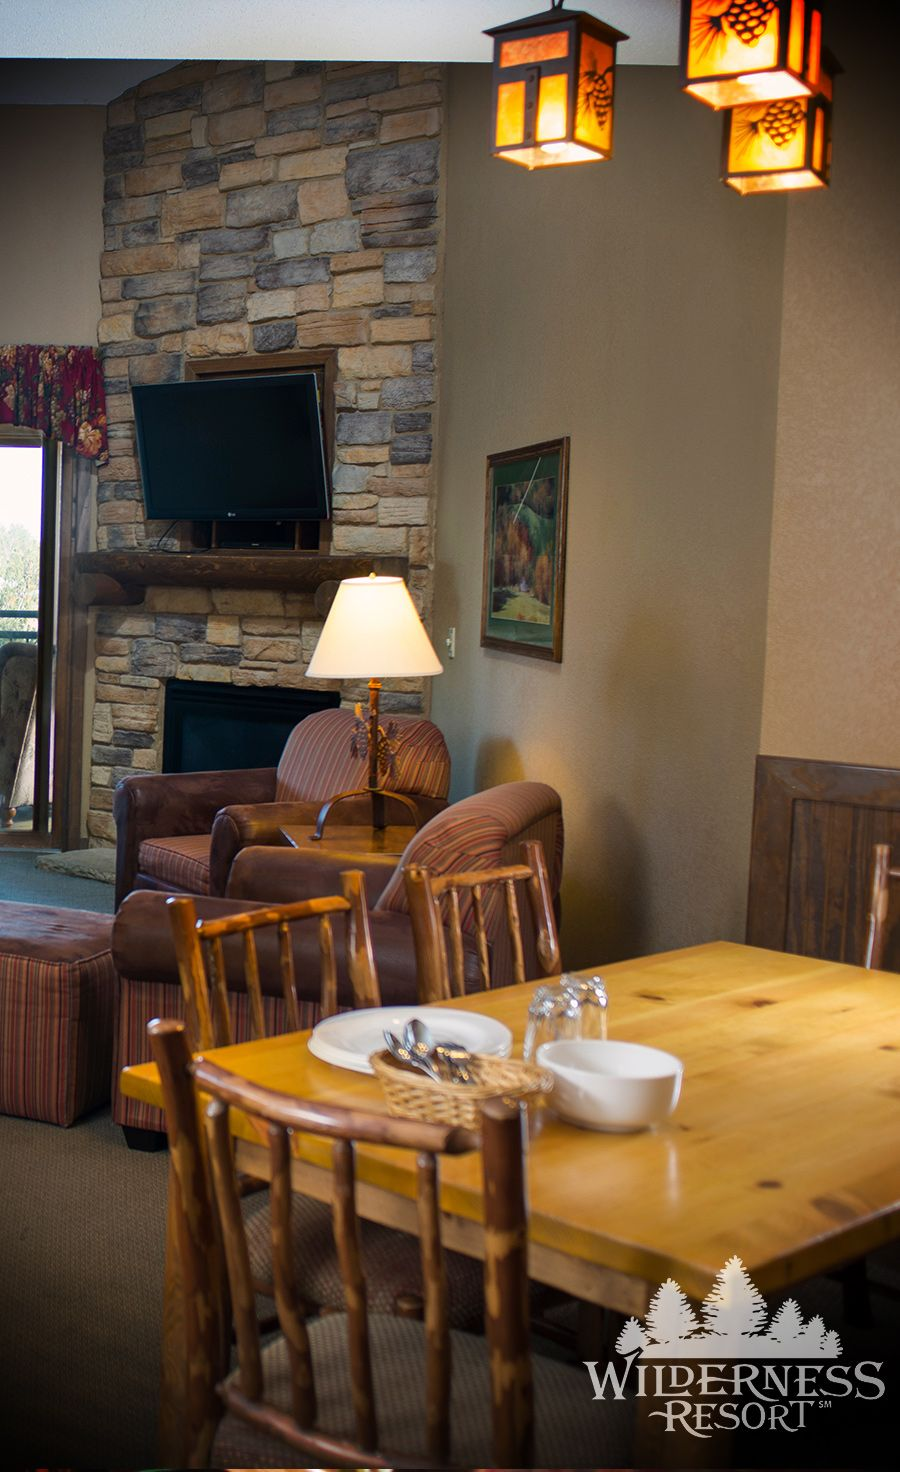 Two And Three Bedroom Condos At Wilderness On The Lake In Wisconsin Dells Wilderness Resort Wisconsin Dells Four Seasons Room